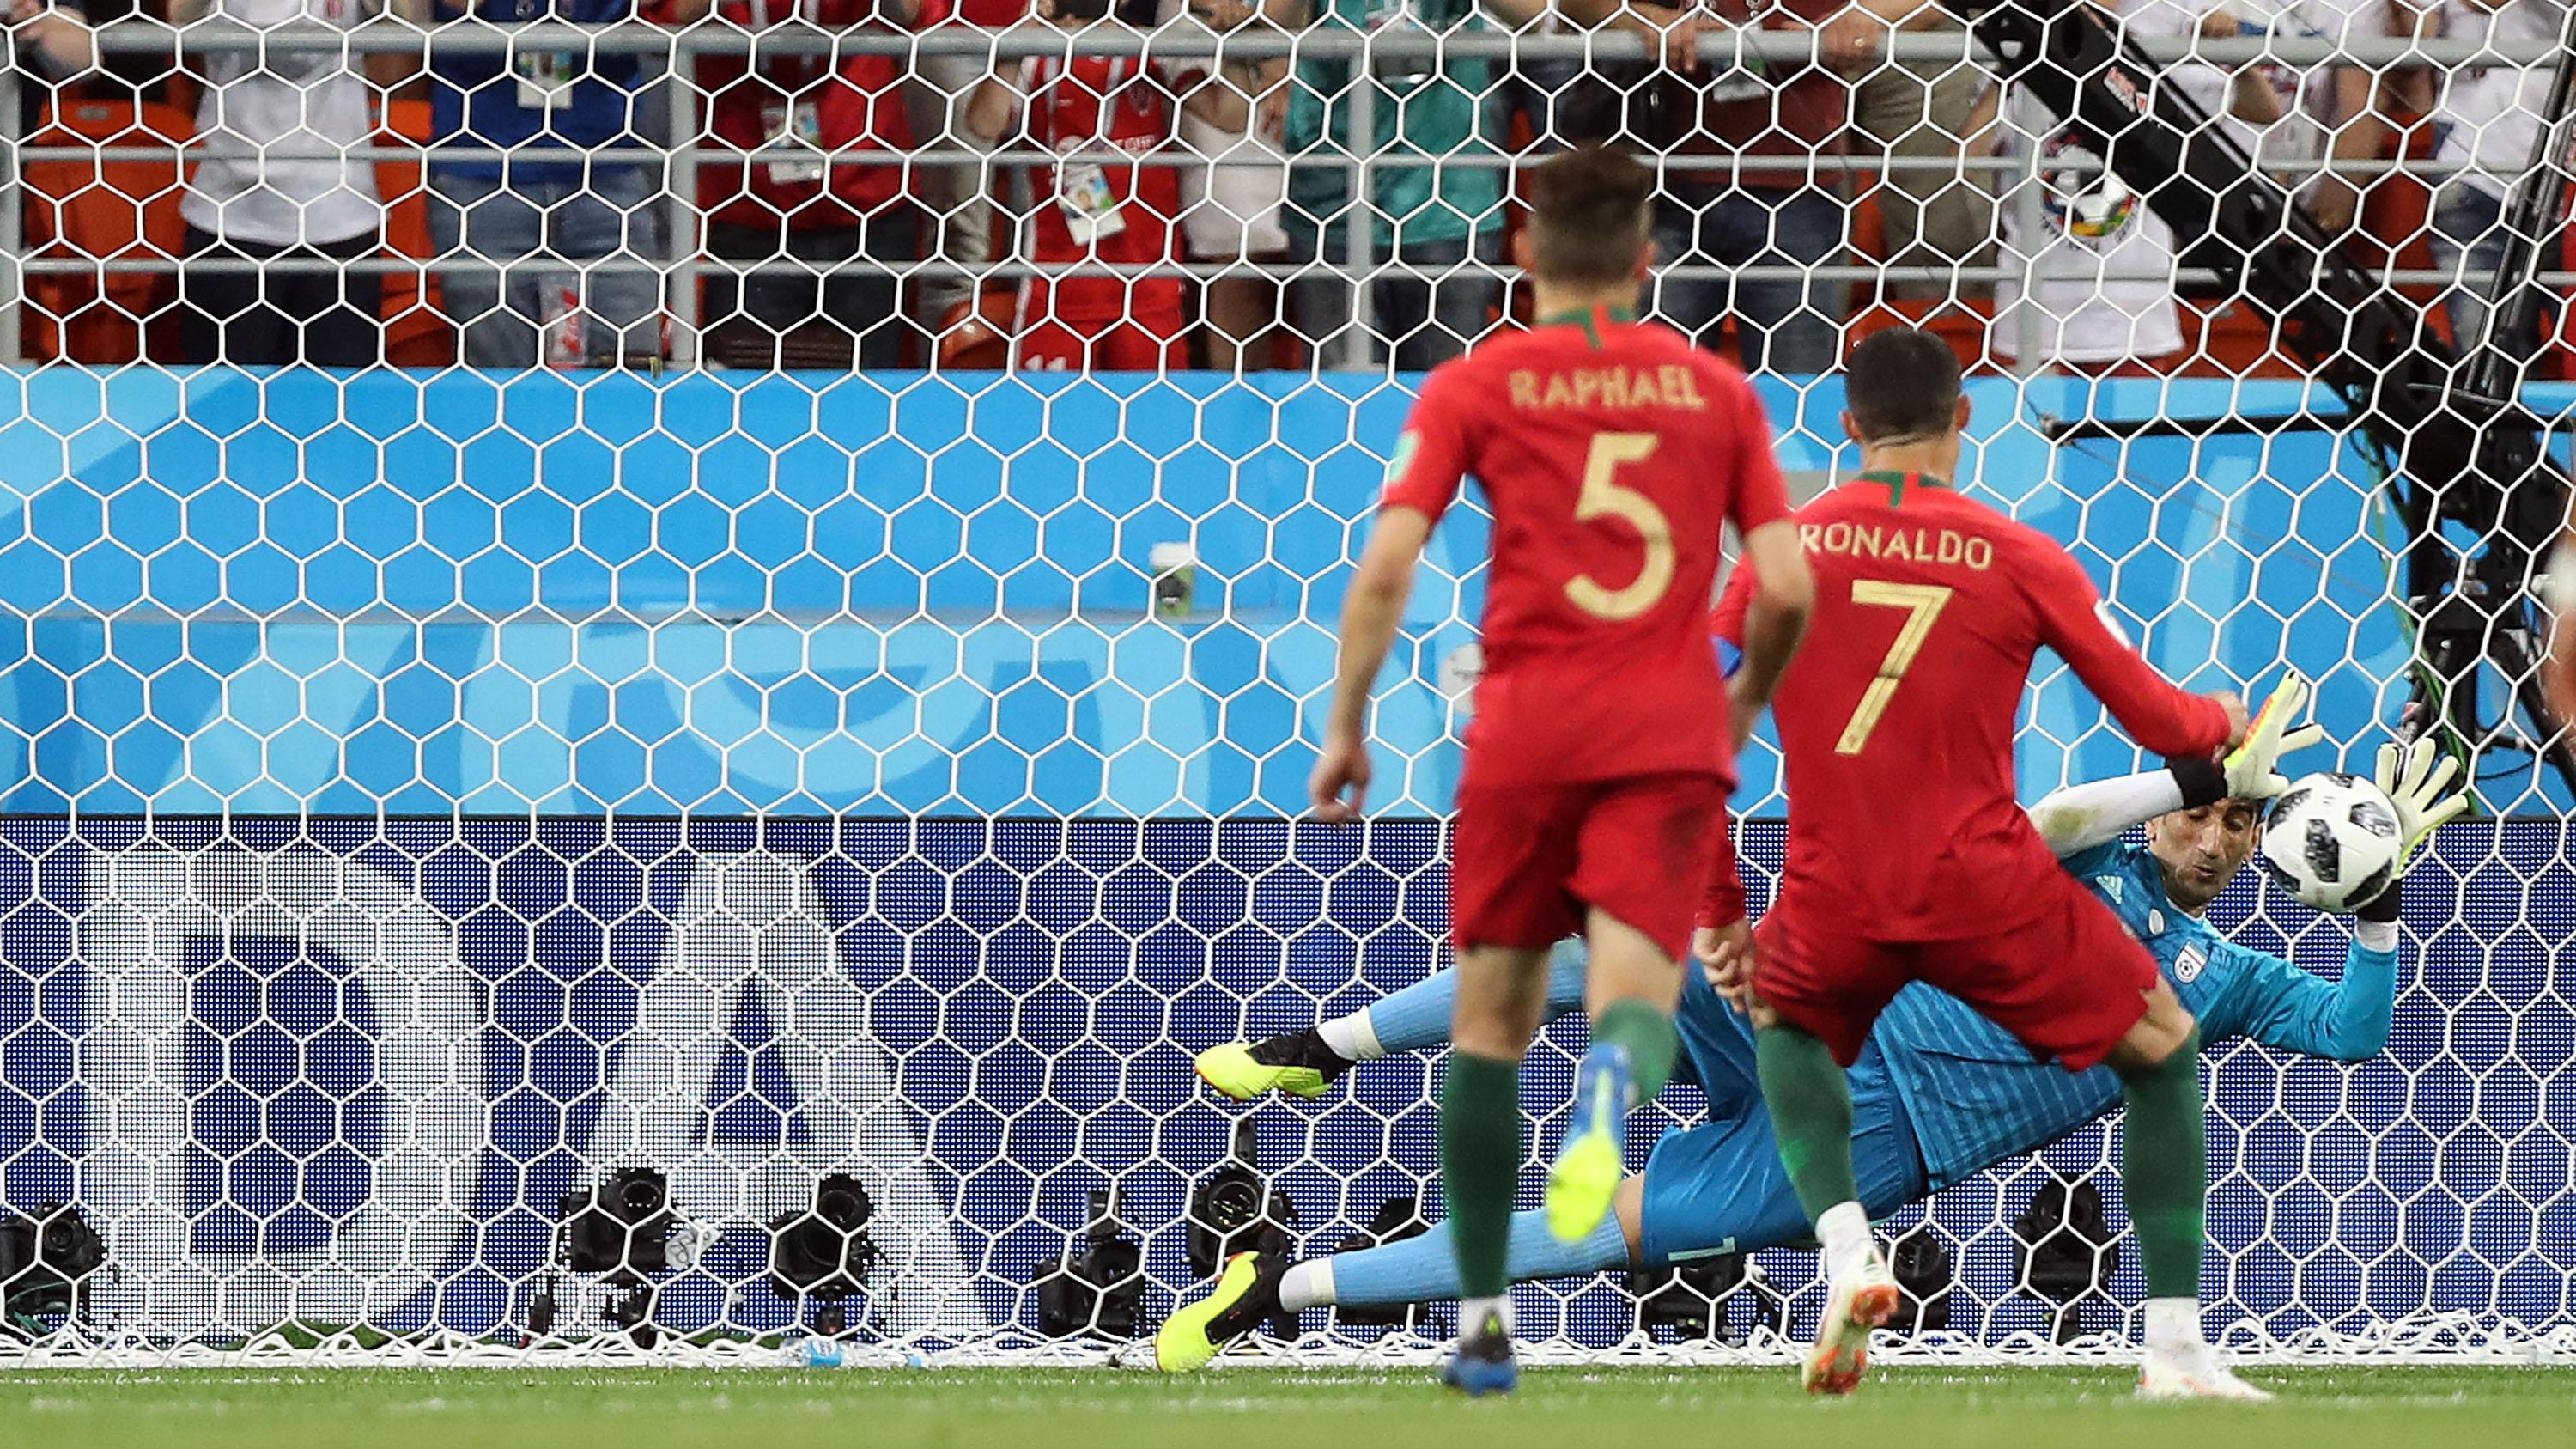 They saved a Cristiano Ronaldo penalty, FFS